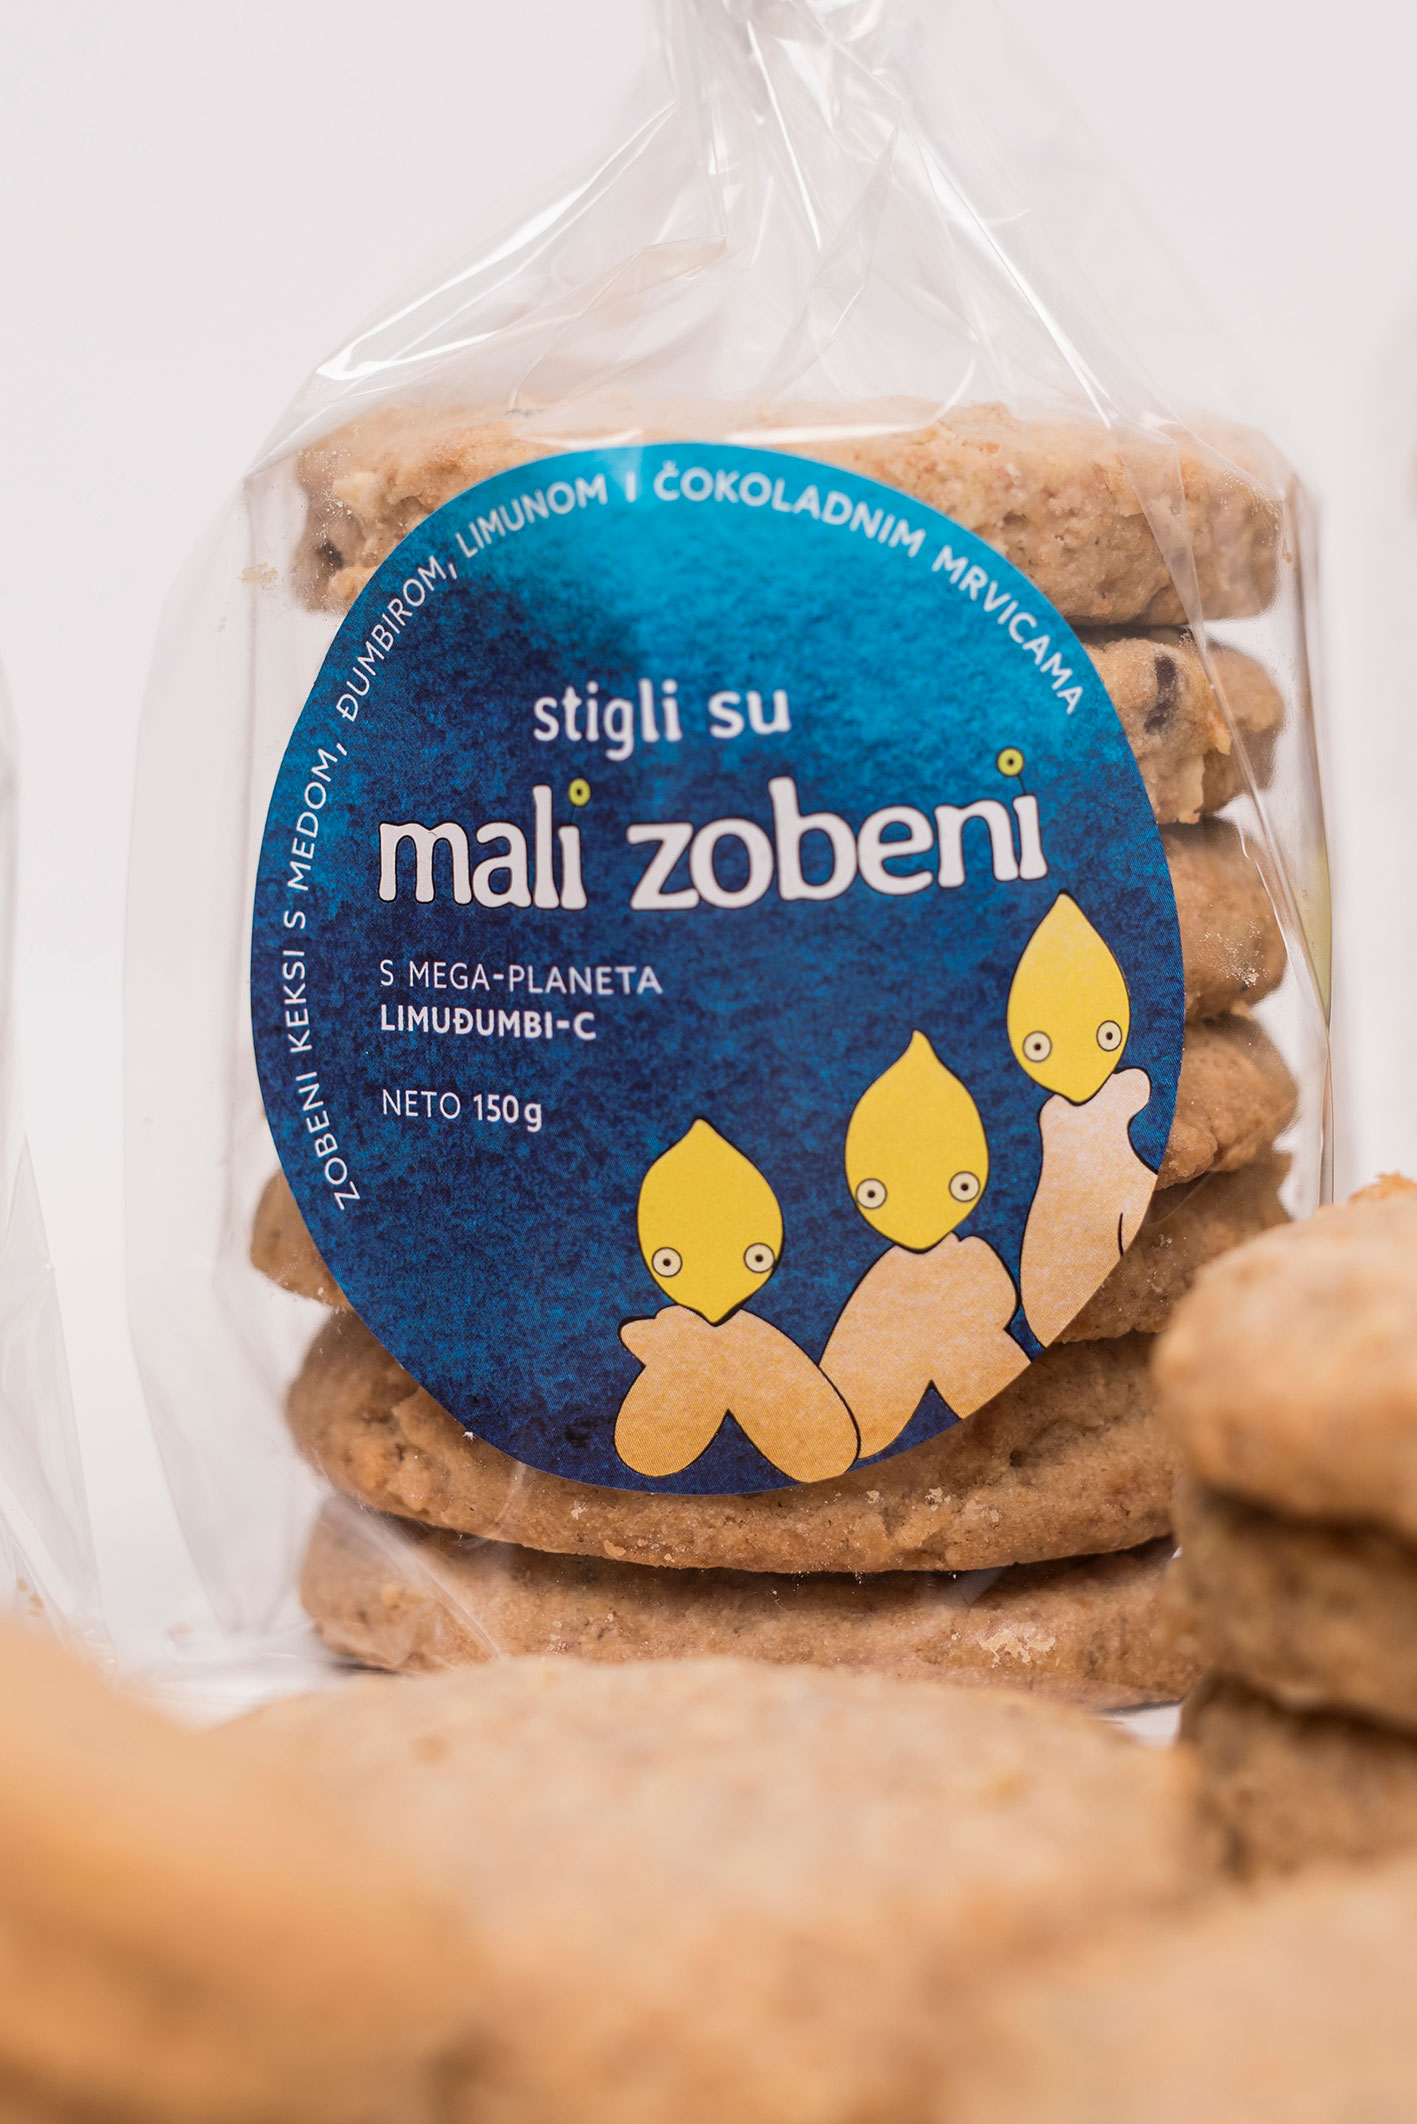 masavukmanovic.com - mali zobeni packaging 08